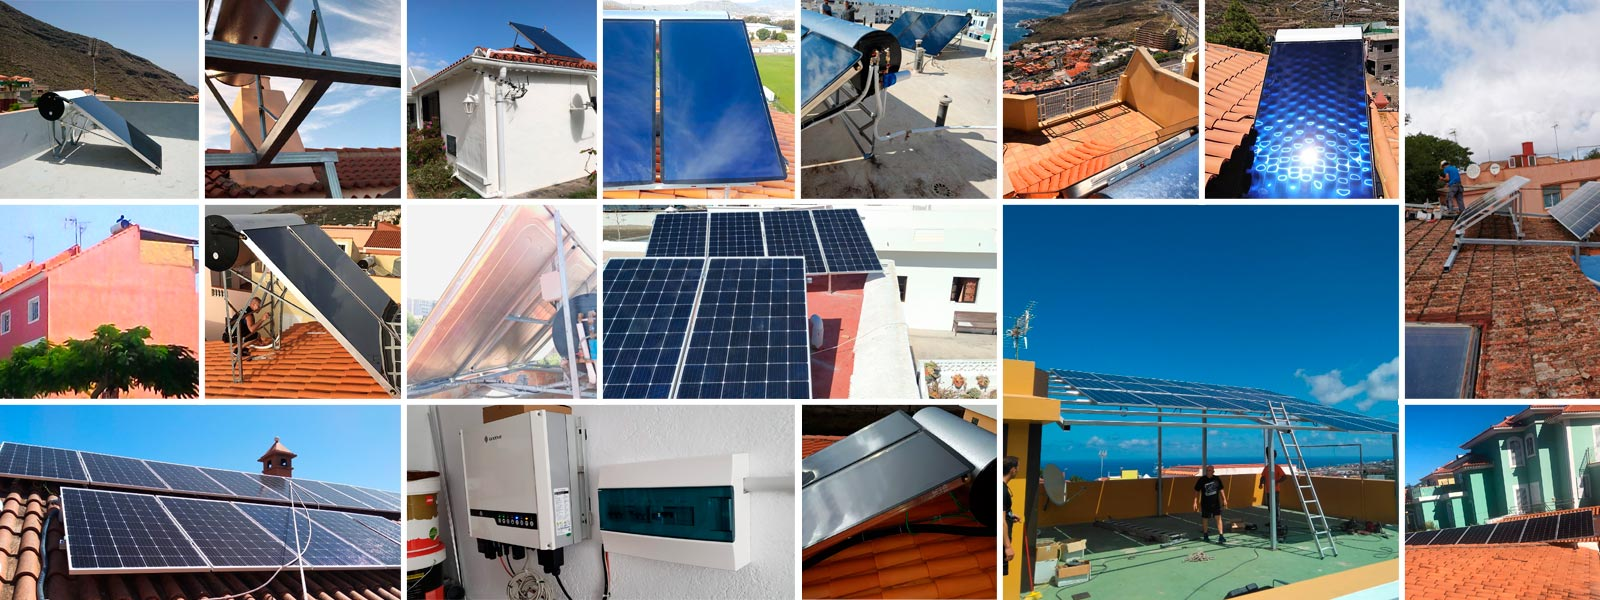 Clientes estudio termosolar